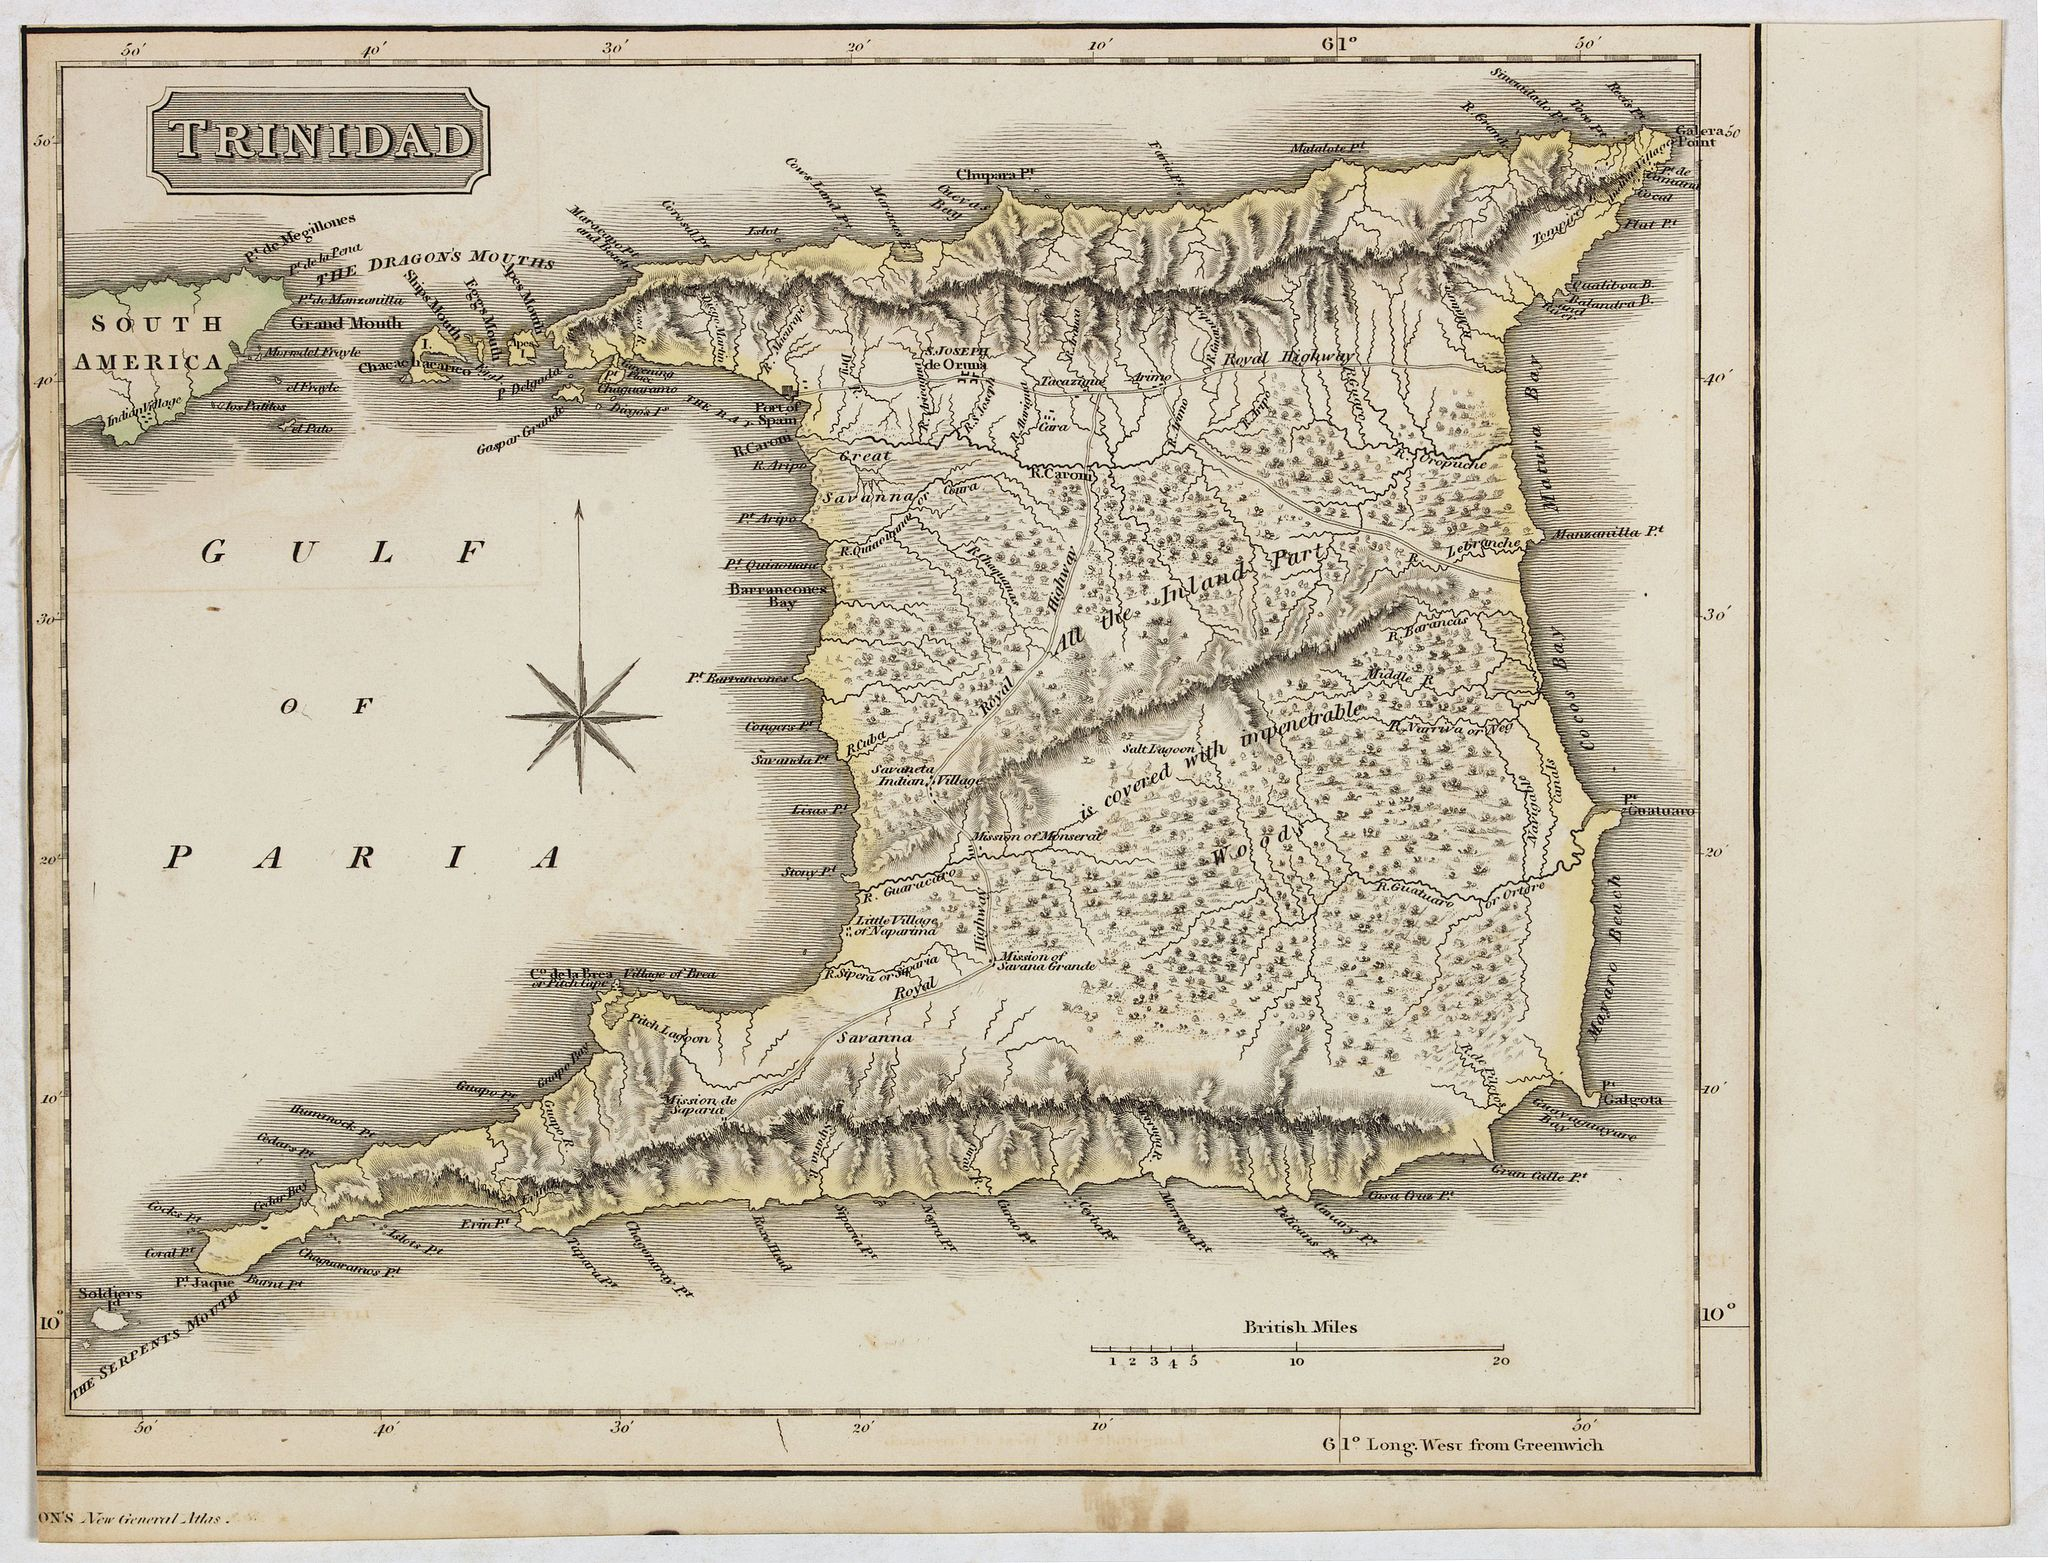 THOMSON, J.,  Trinidad, antique map, old maps